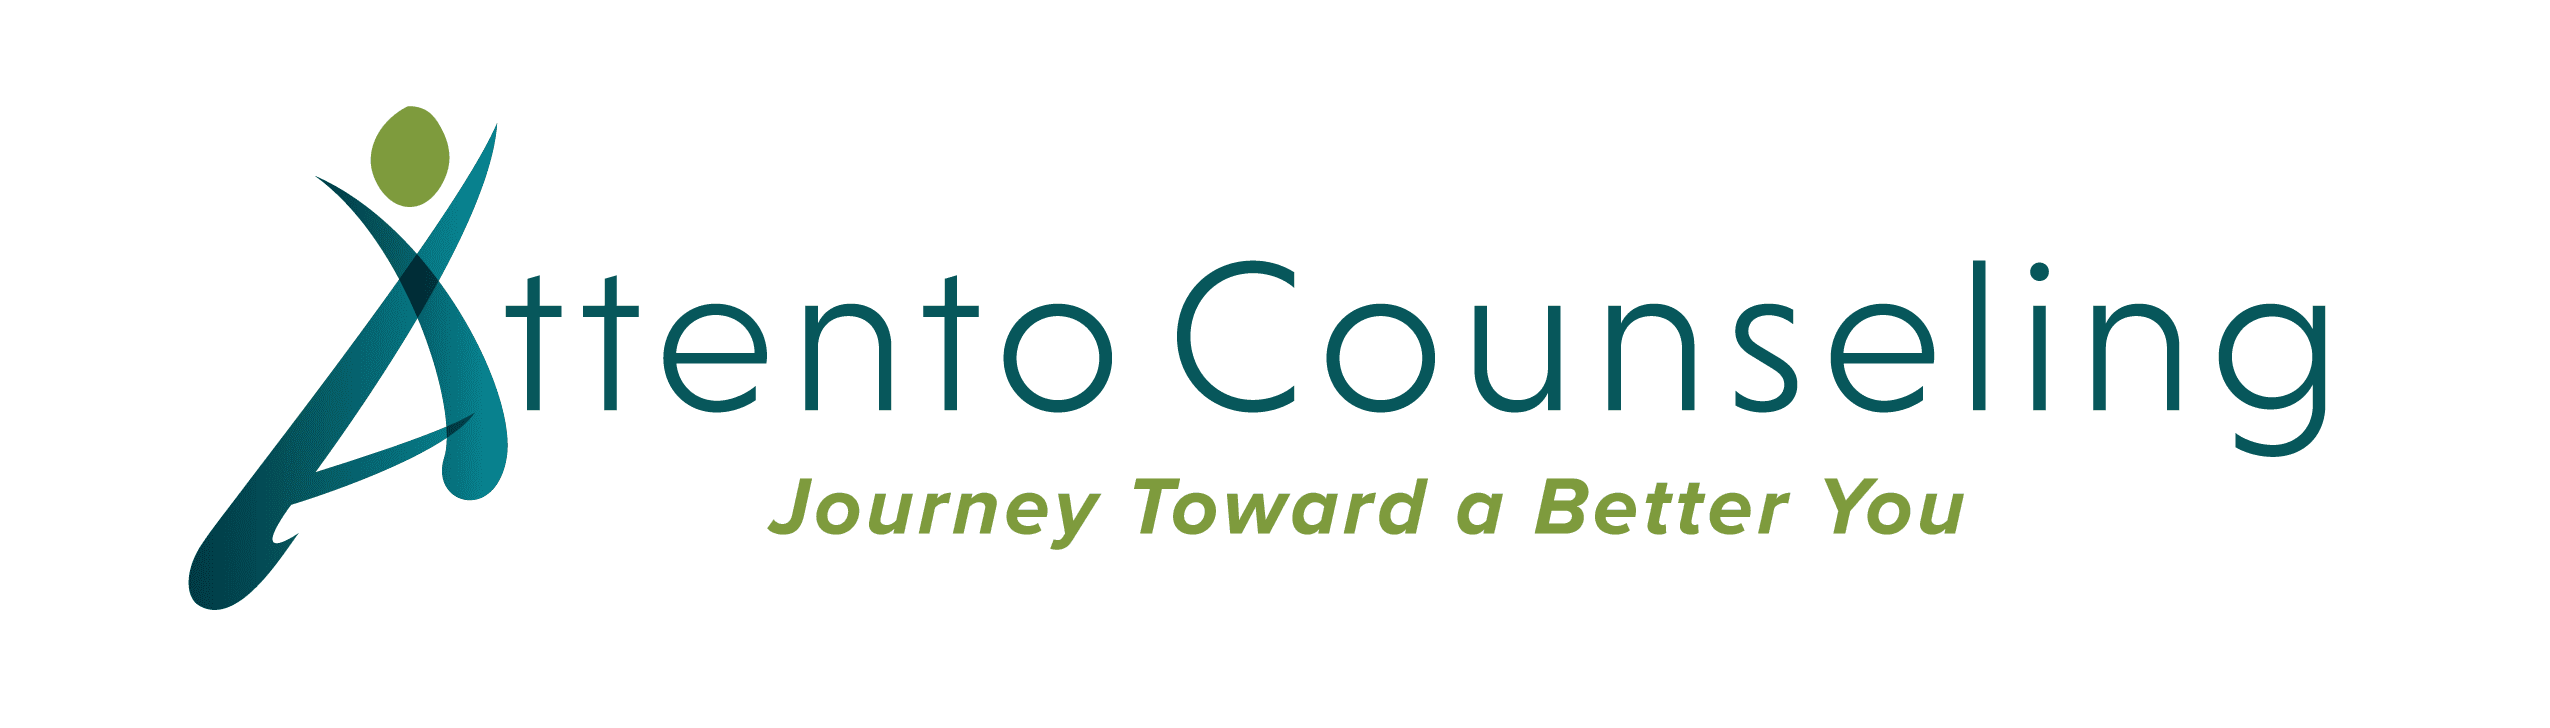 Attento Counseling Logo_Final_Color-01